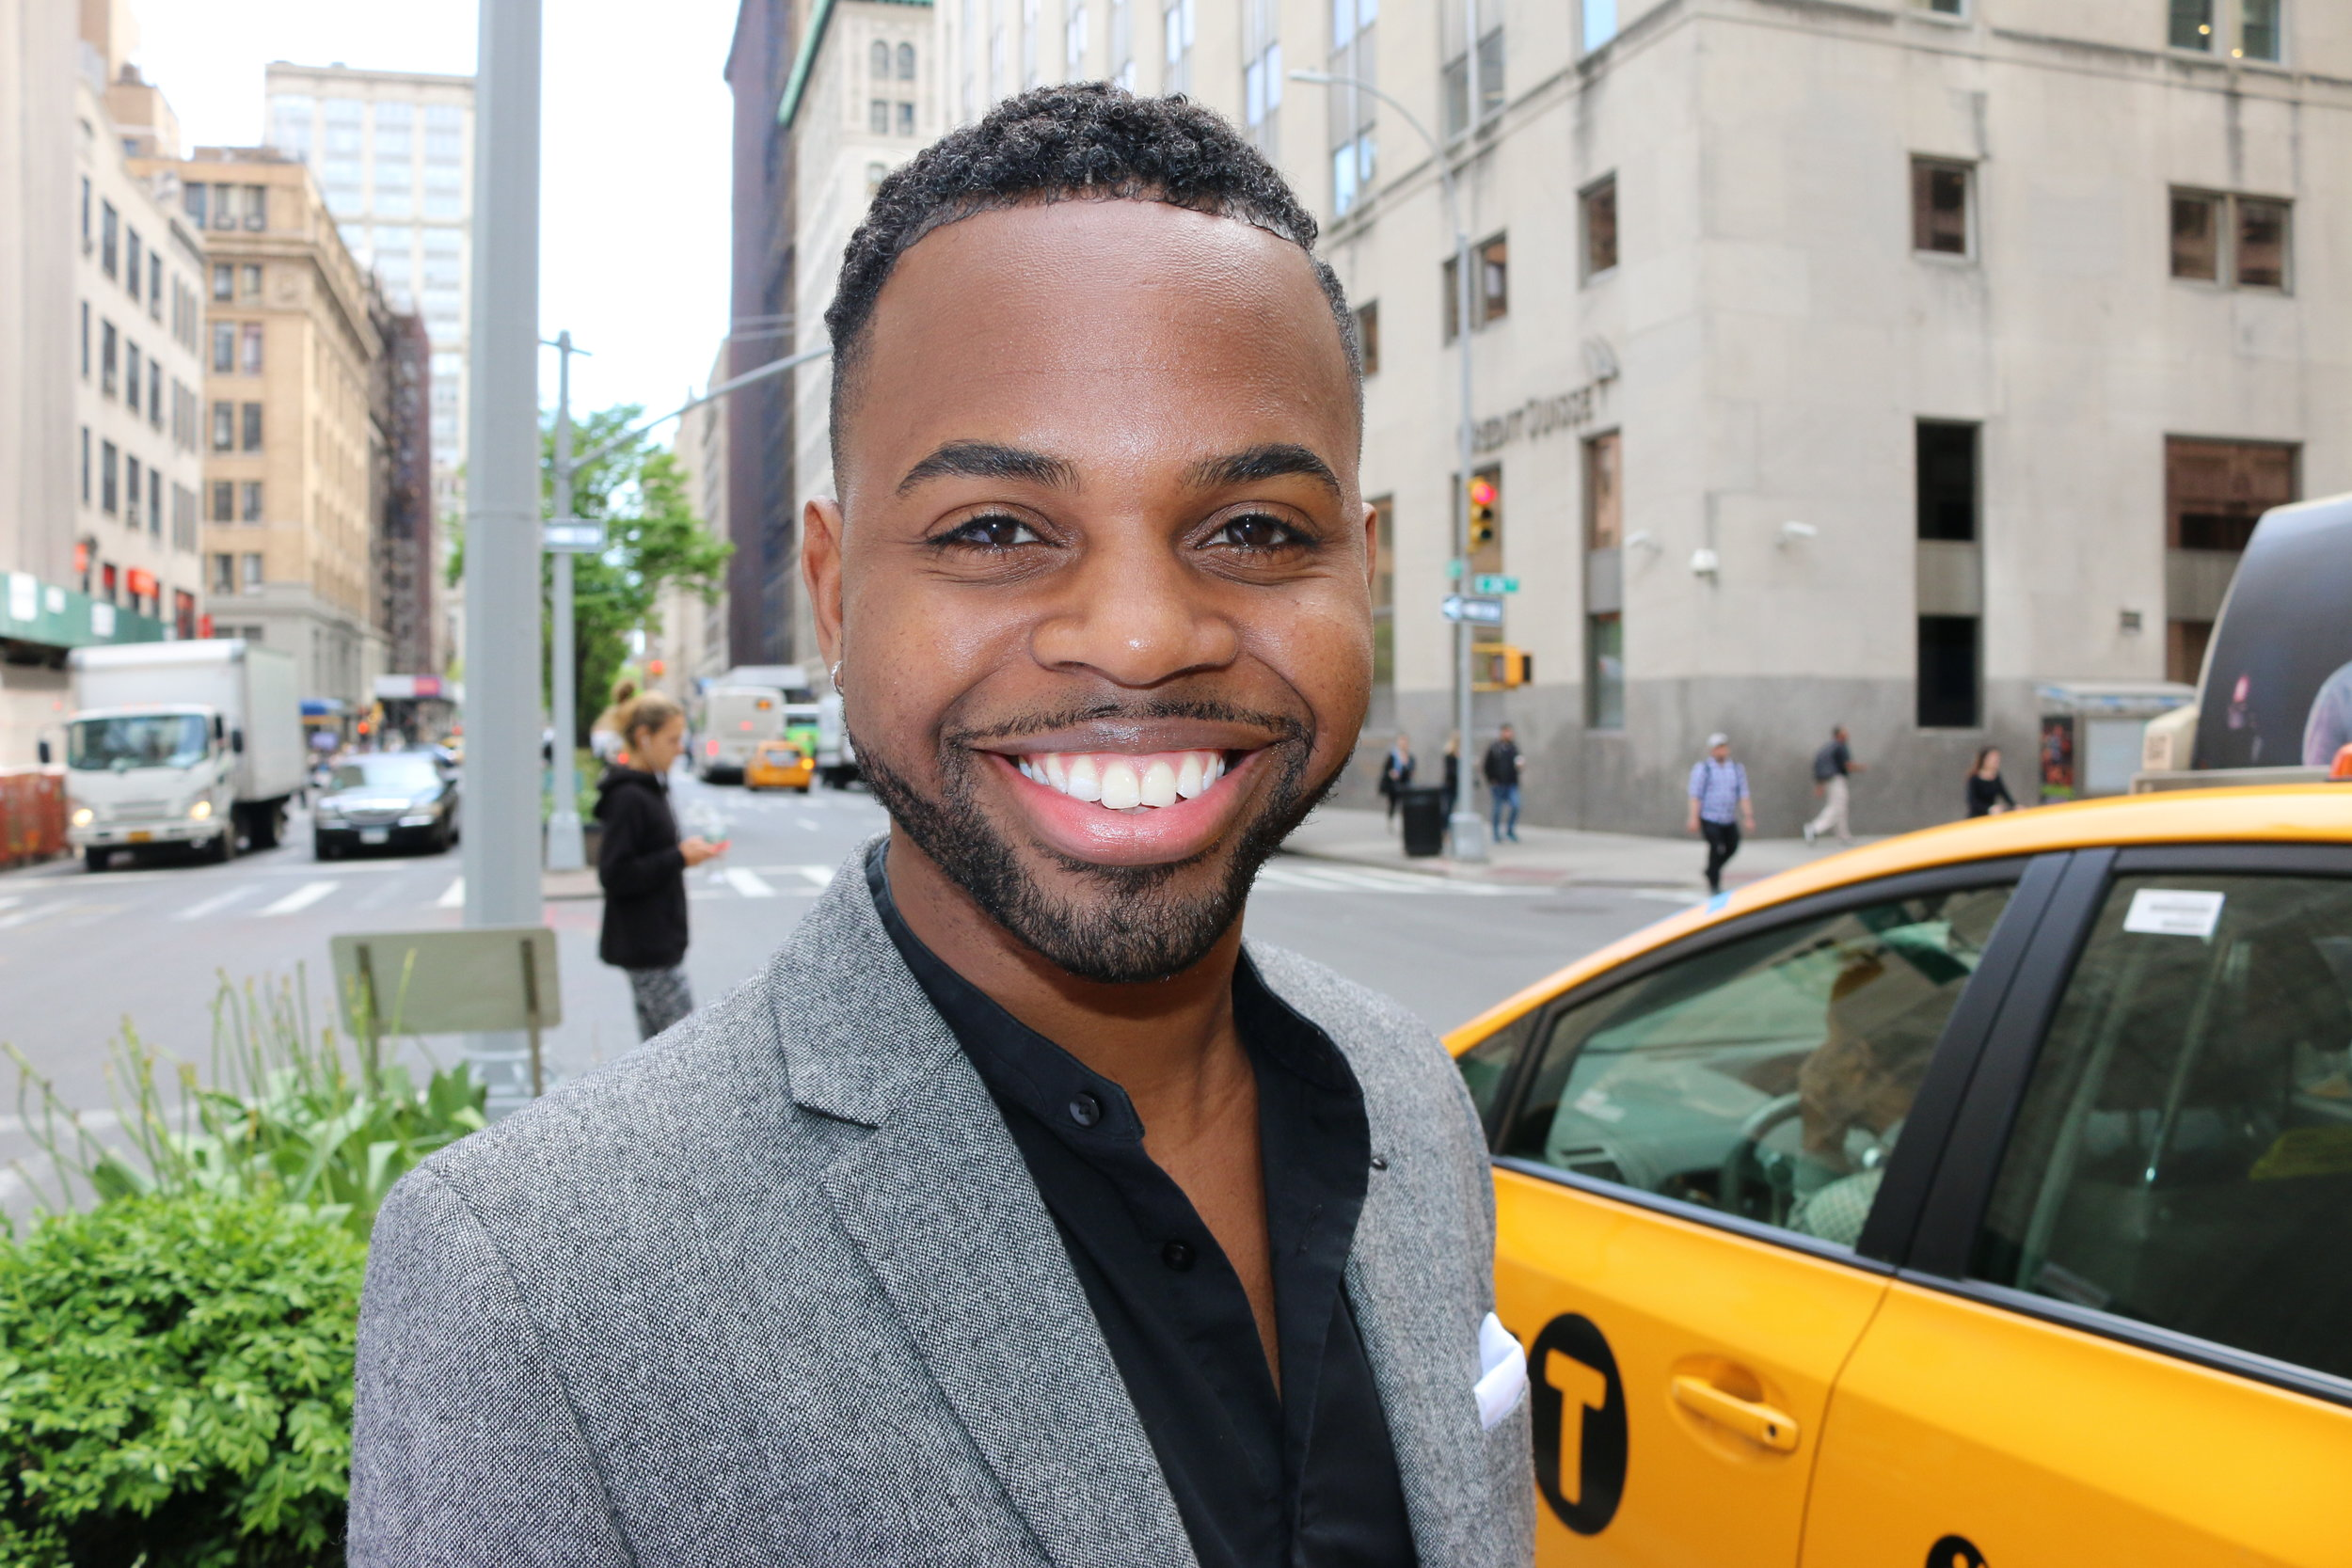 WHOSAY Talent Coordinator of Diversity, Daion Morton